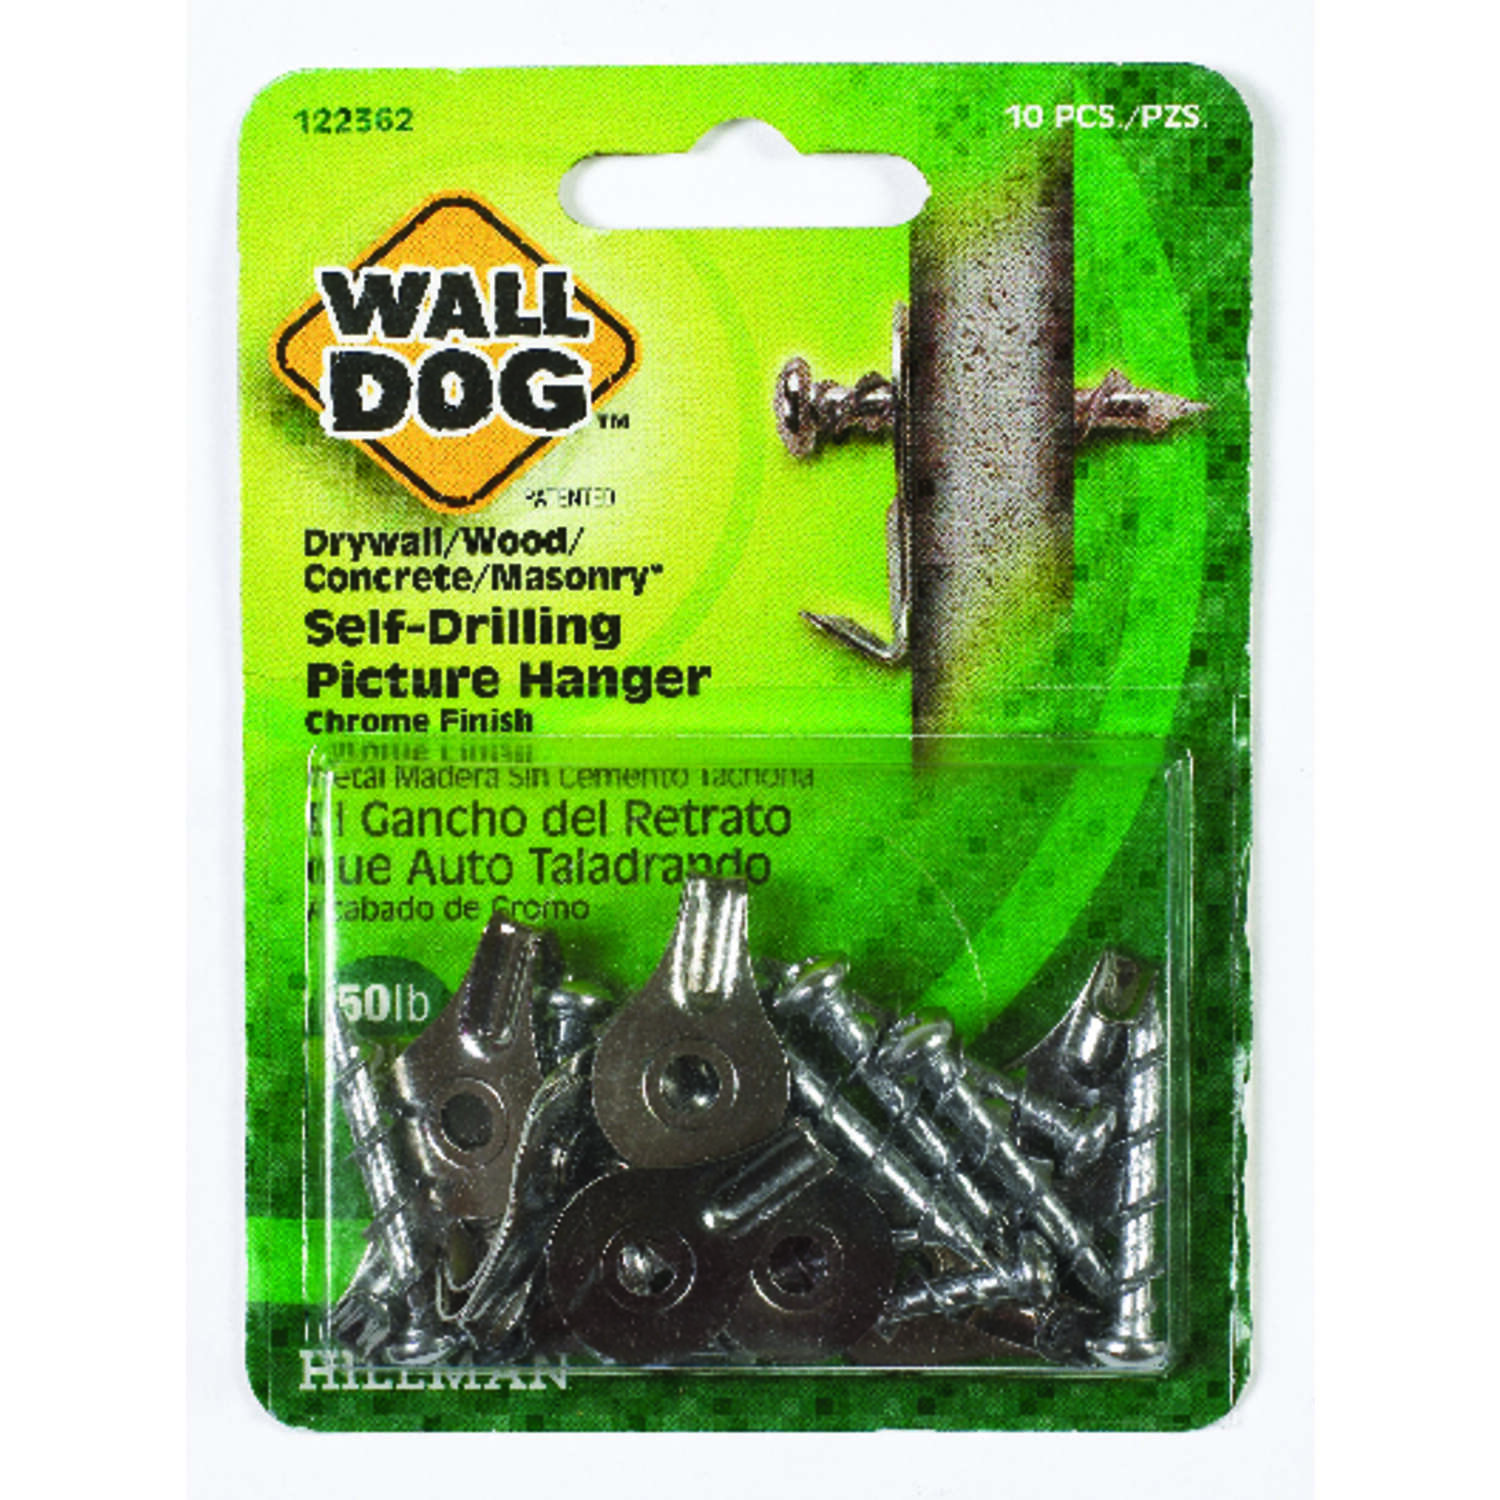 HILLMAN  WALL DOG  Chrome  Self-Drilling  Picture Hanger  50 lb. Steel  10 pk